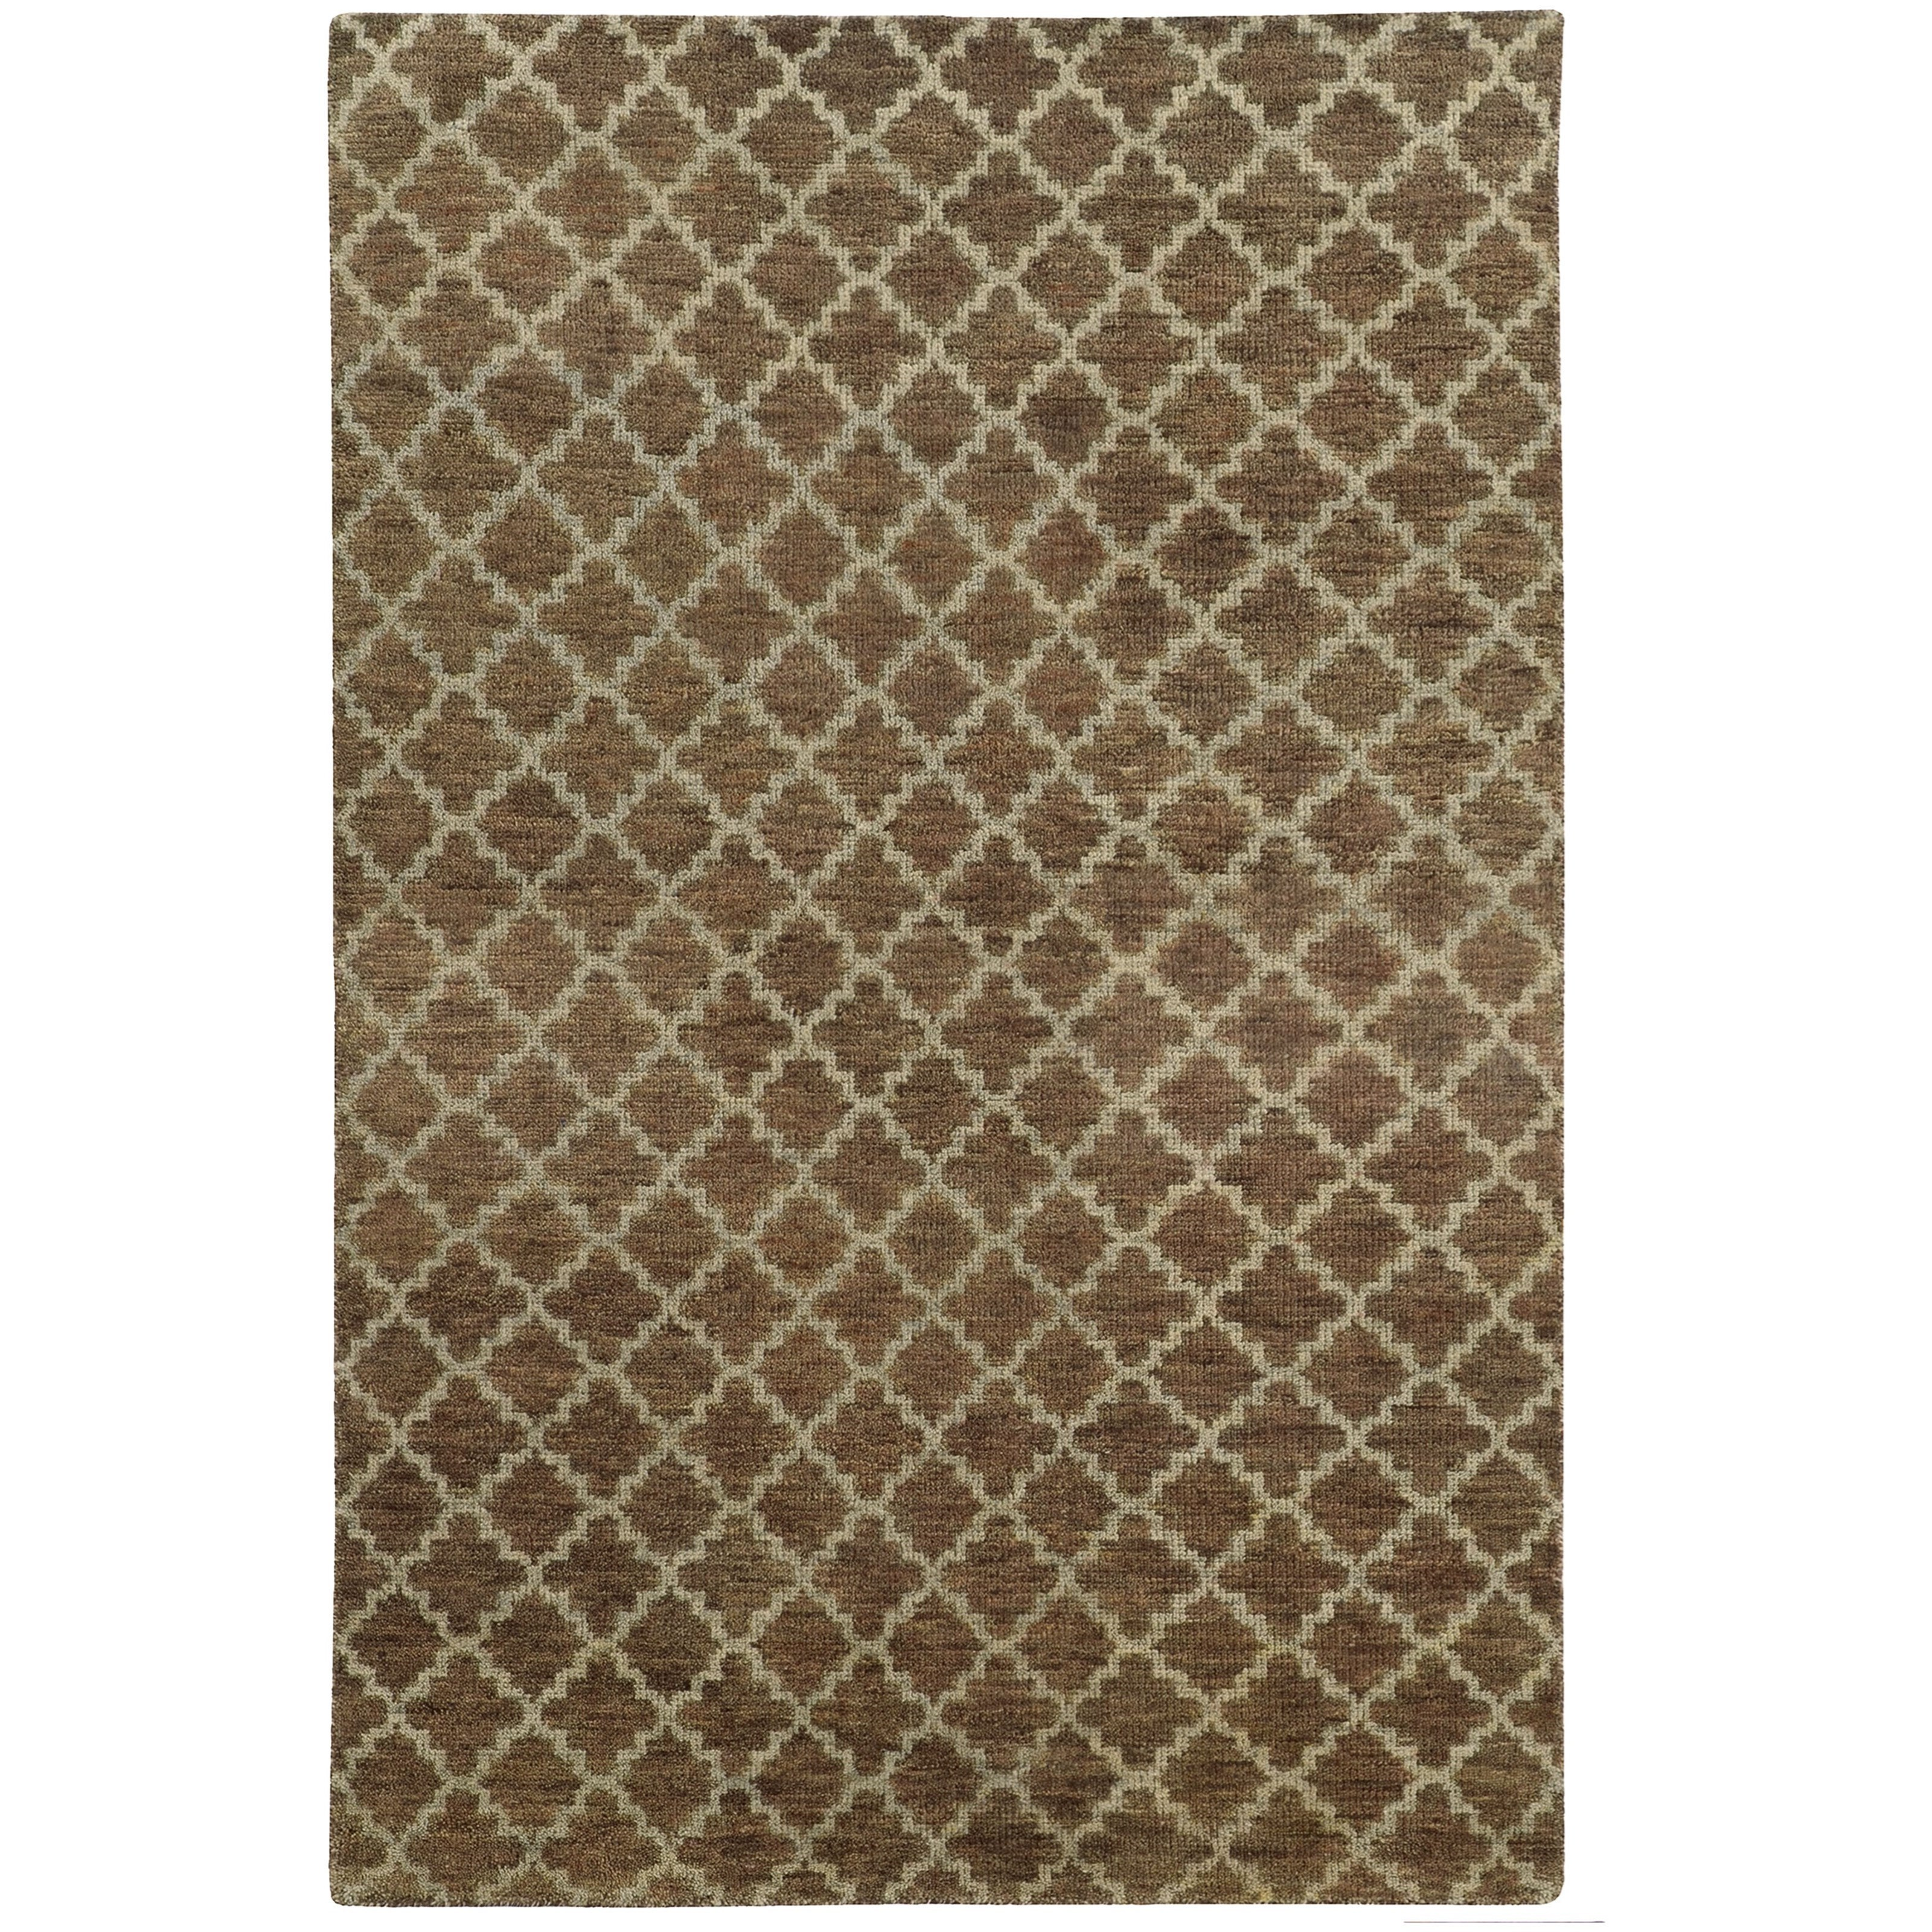 "Maddox 5' 0"" X  8' 0"" Rectangle Rug by Oriental Weavers at Steger's Furniture"